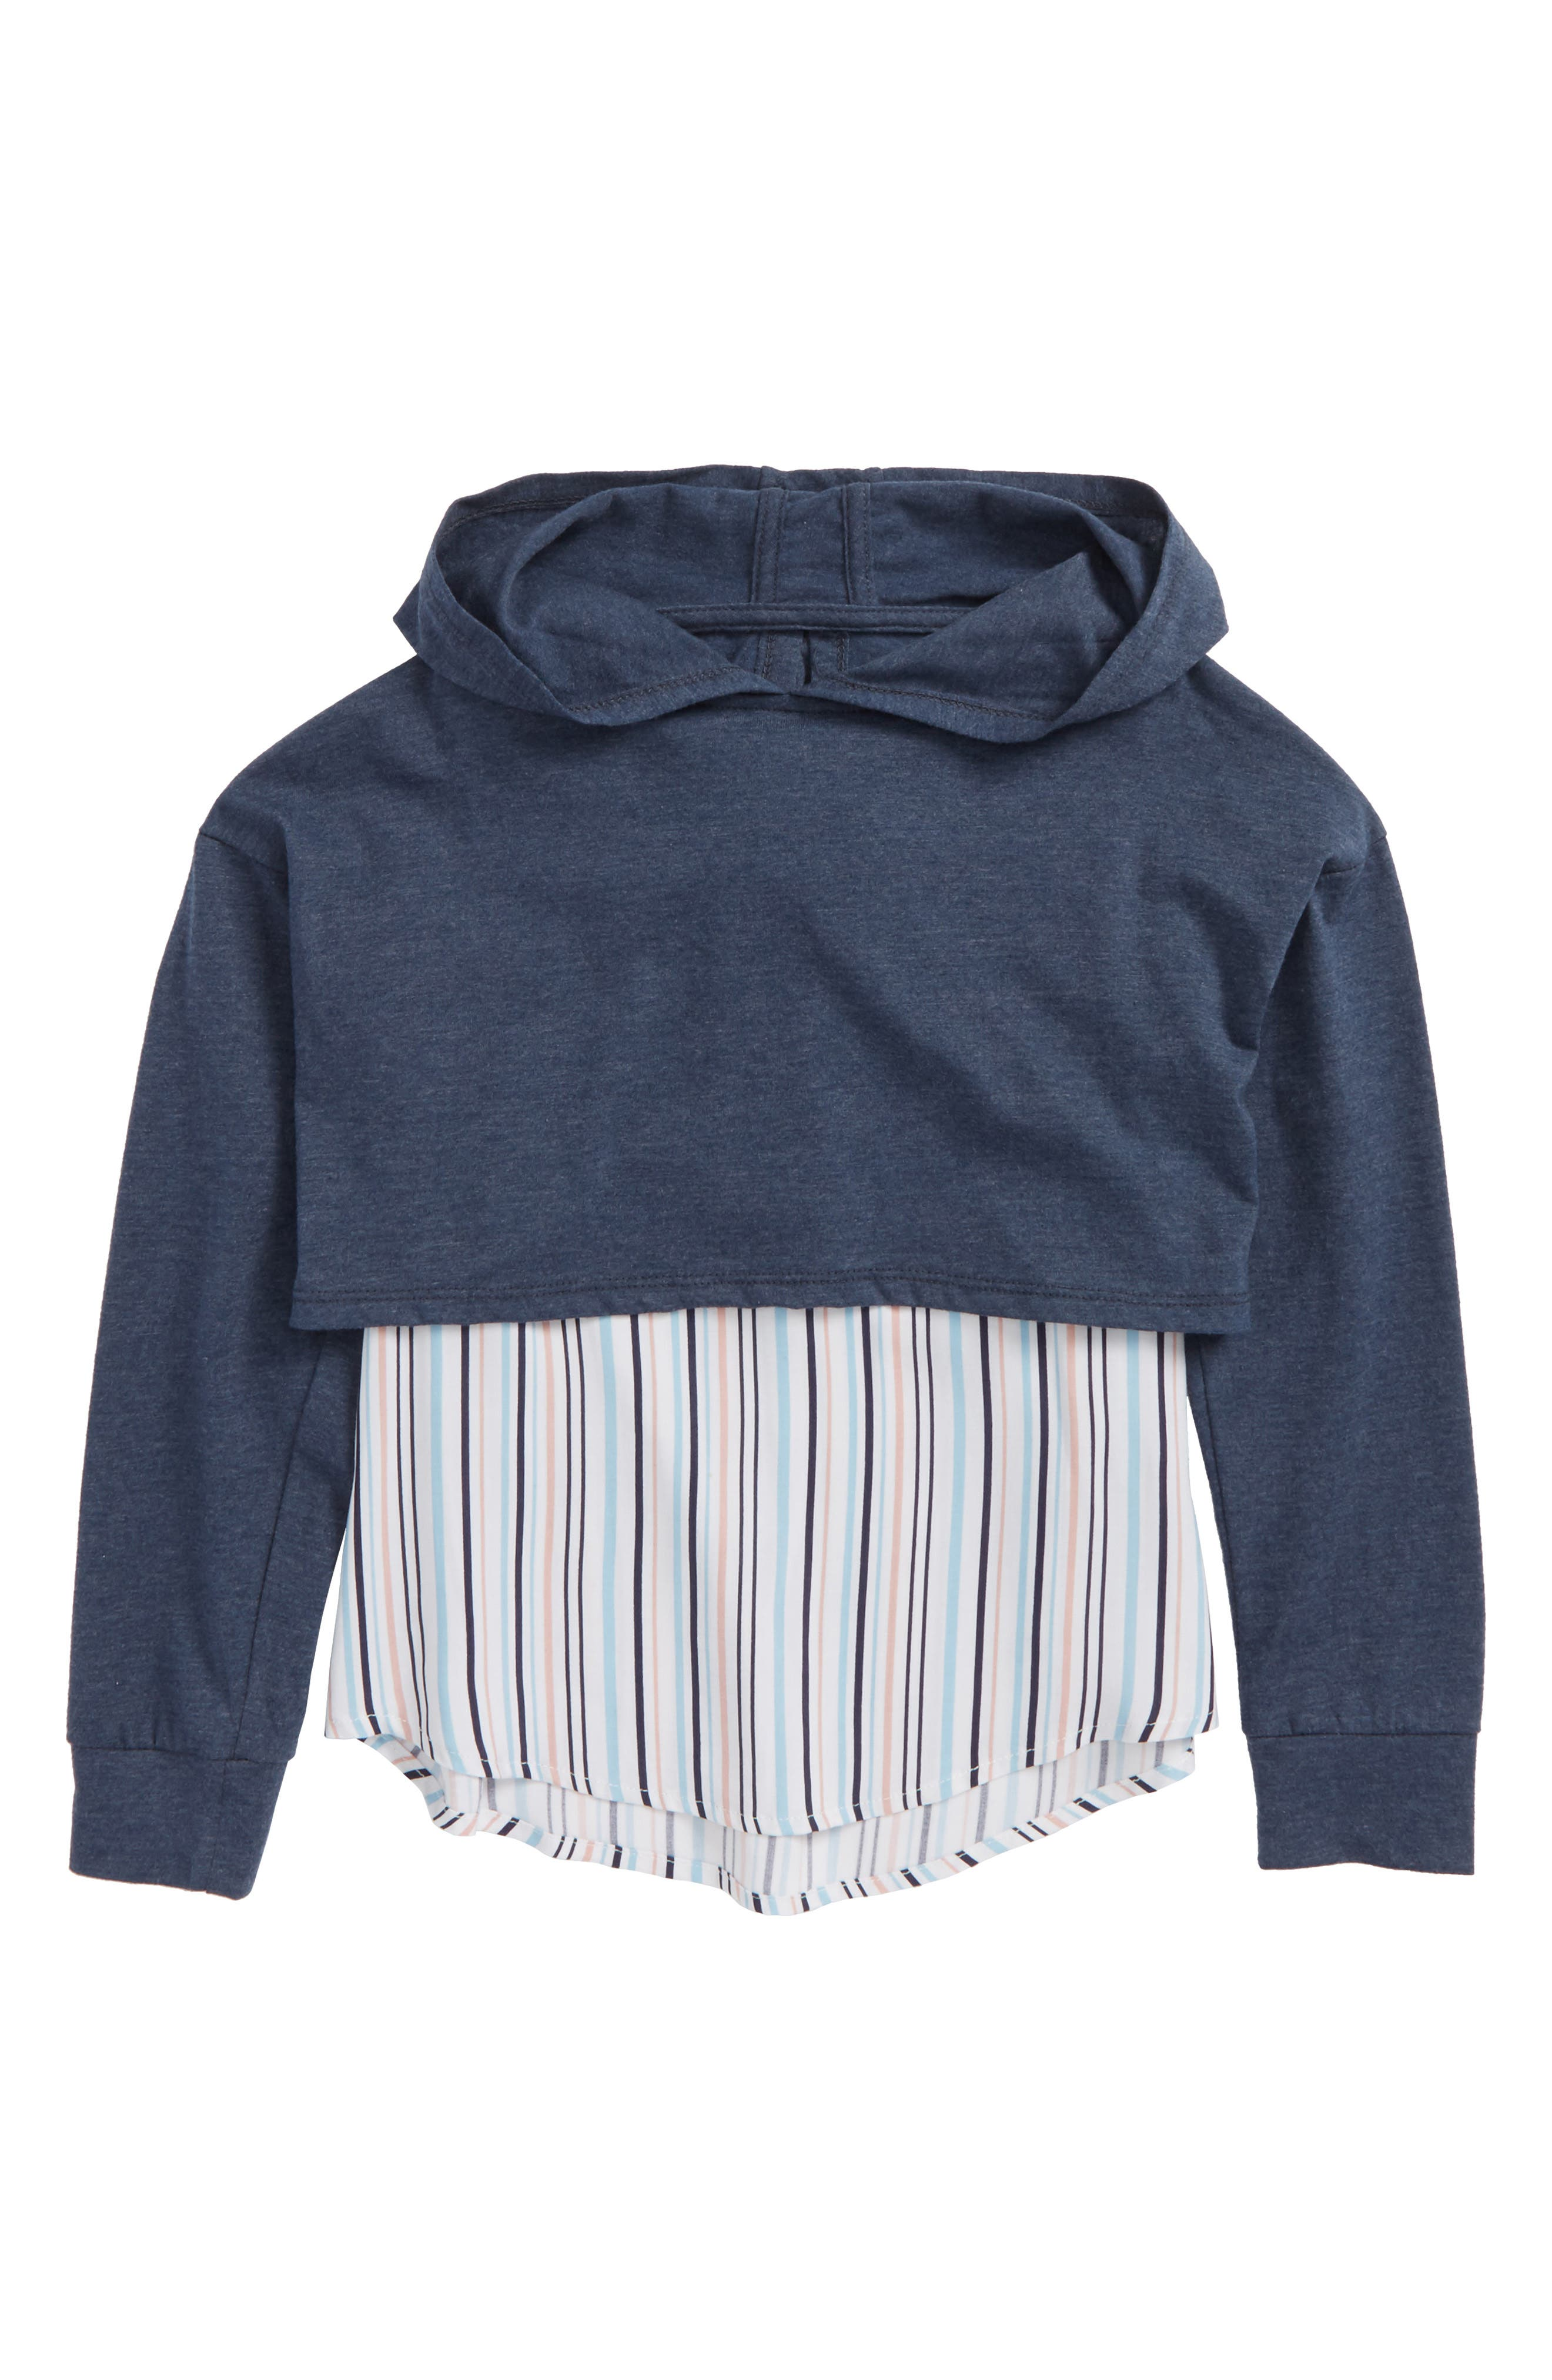 Mixed Media Hooded Top,                         Main,                         color, 400